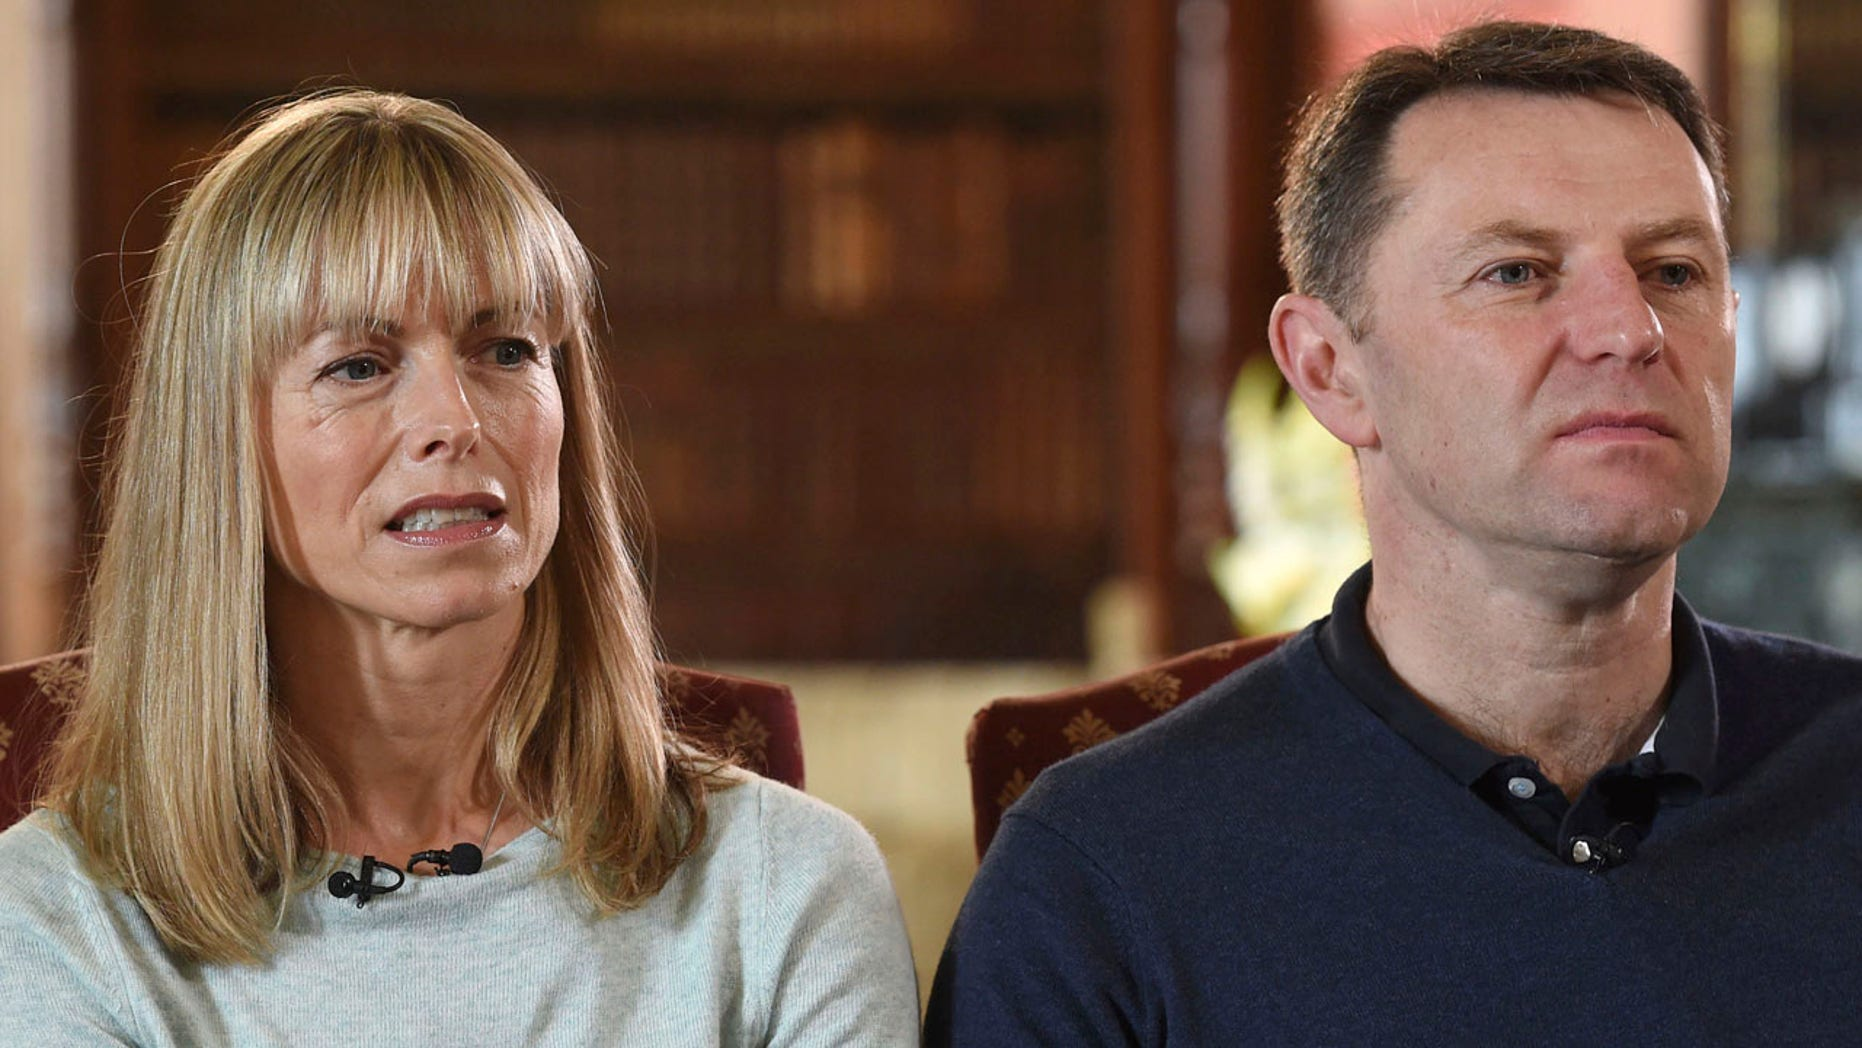 Kate and Gerry McCann, whose daughter Madeleine disappeared from a holiday flat in Portugal ten-years ago, react during a BBC TV interview in Loughborough, England, Friday April 28, 2017.